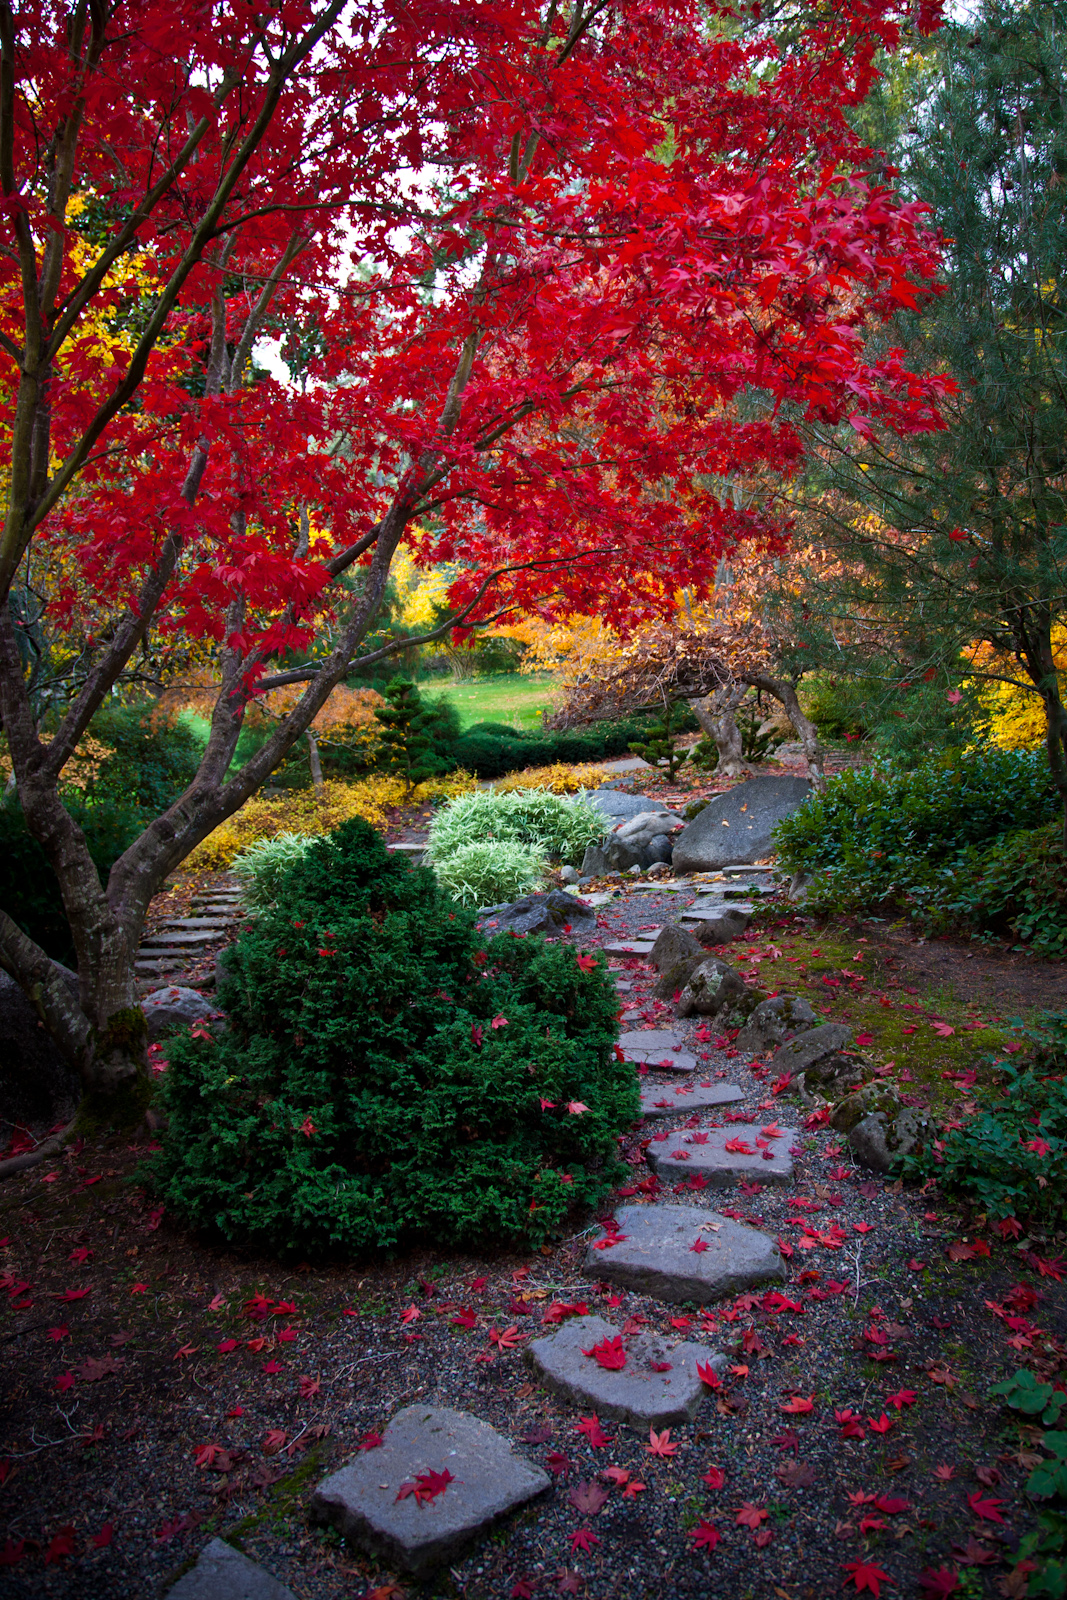 A second scene at the Japanese Gardens in Lithia Park.